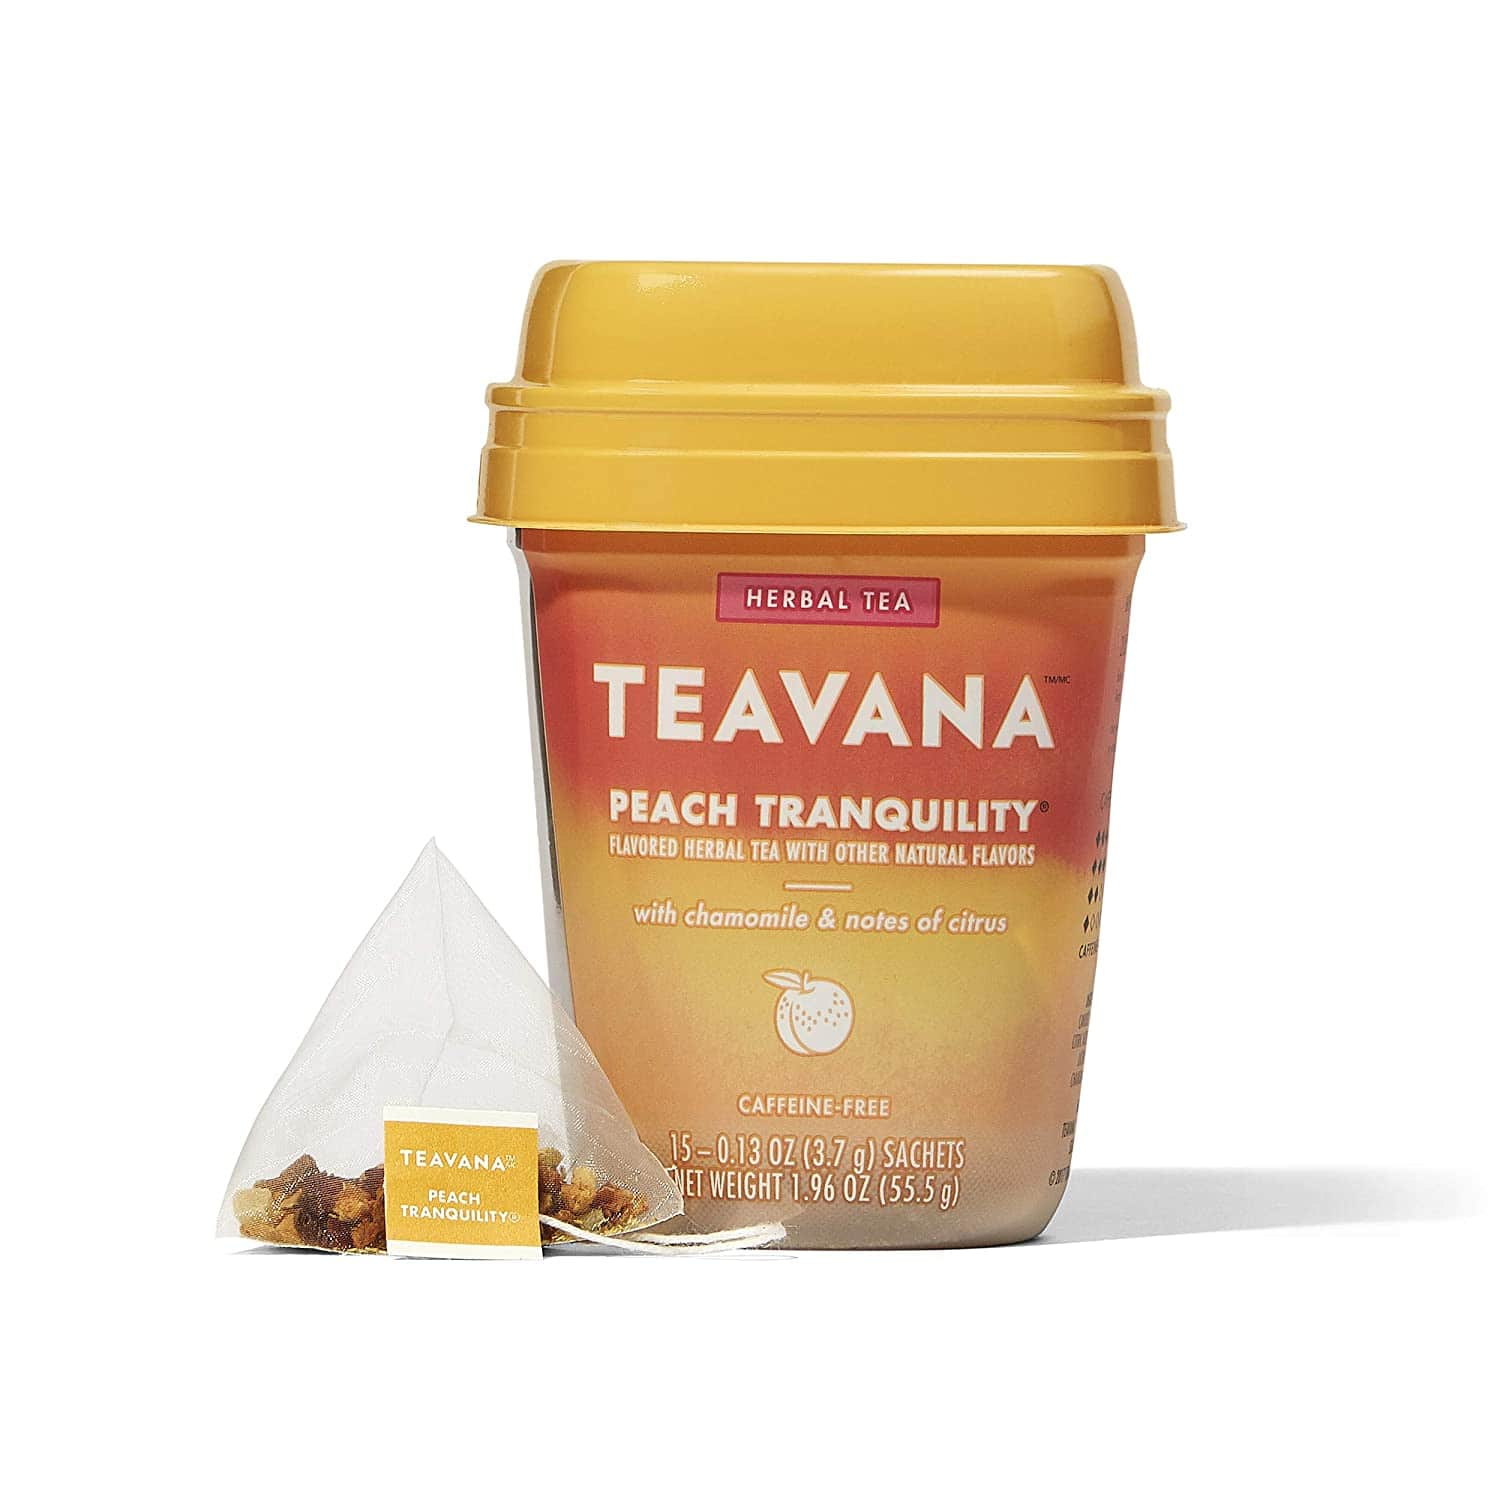 Teavana Peach Tranquility, Herbal Tea With Chamomile and Notes of Citrus, 60 Count (4 packs of 15 sachets) for $13.76 @ Amazon